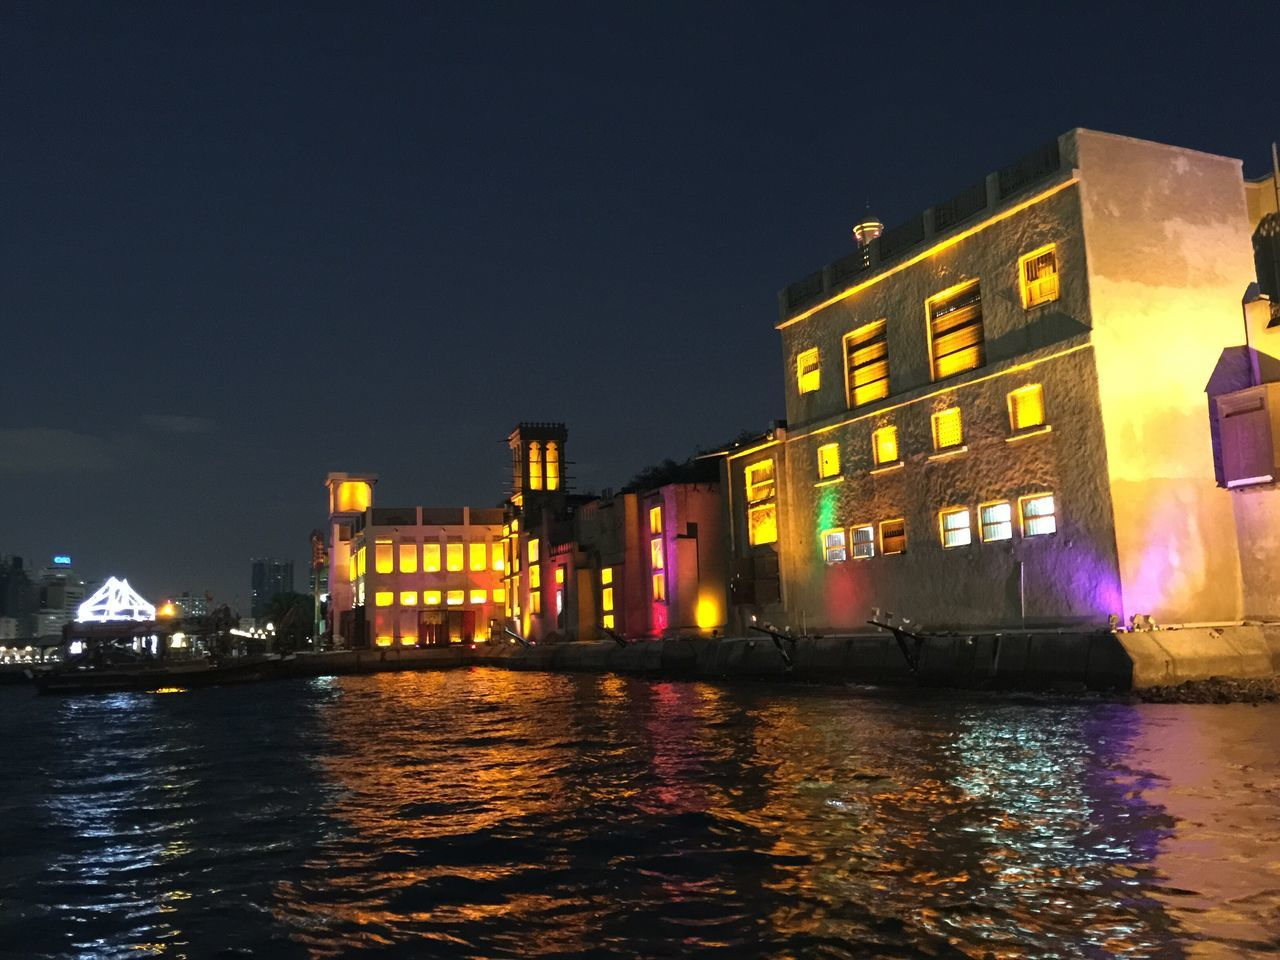 Traditions preserved Dubai❤ In Dubai Creek Creekside Water Night Night Photography Tradition Nightlife Light And Shadow Light Darkness And Light Colors Boat Boat Ride Architecture Old-fashioned Arabic Architecture Water Reflections Creekside Photography Building Exterior Fantasy The City Light